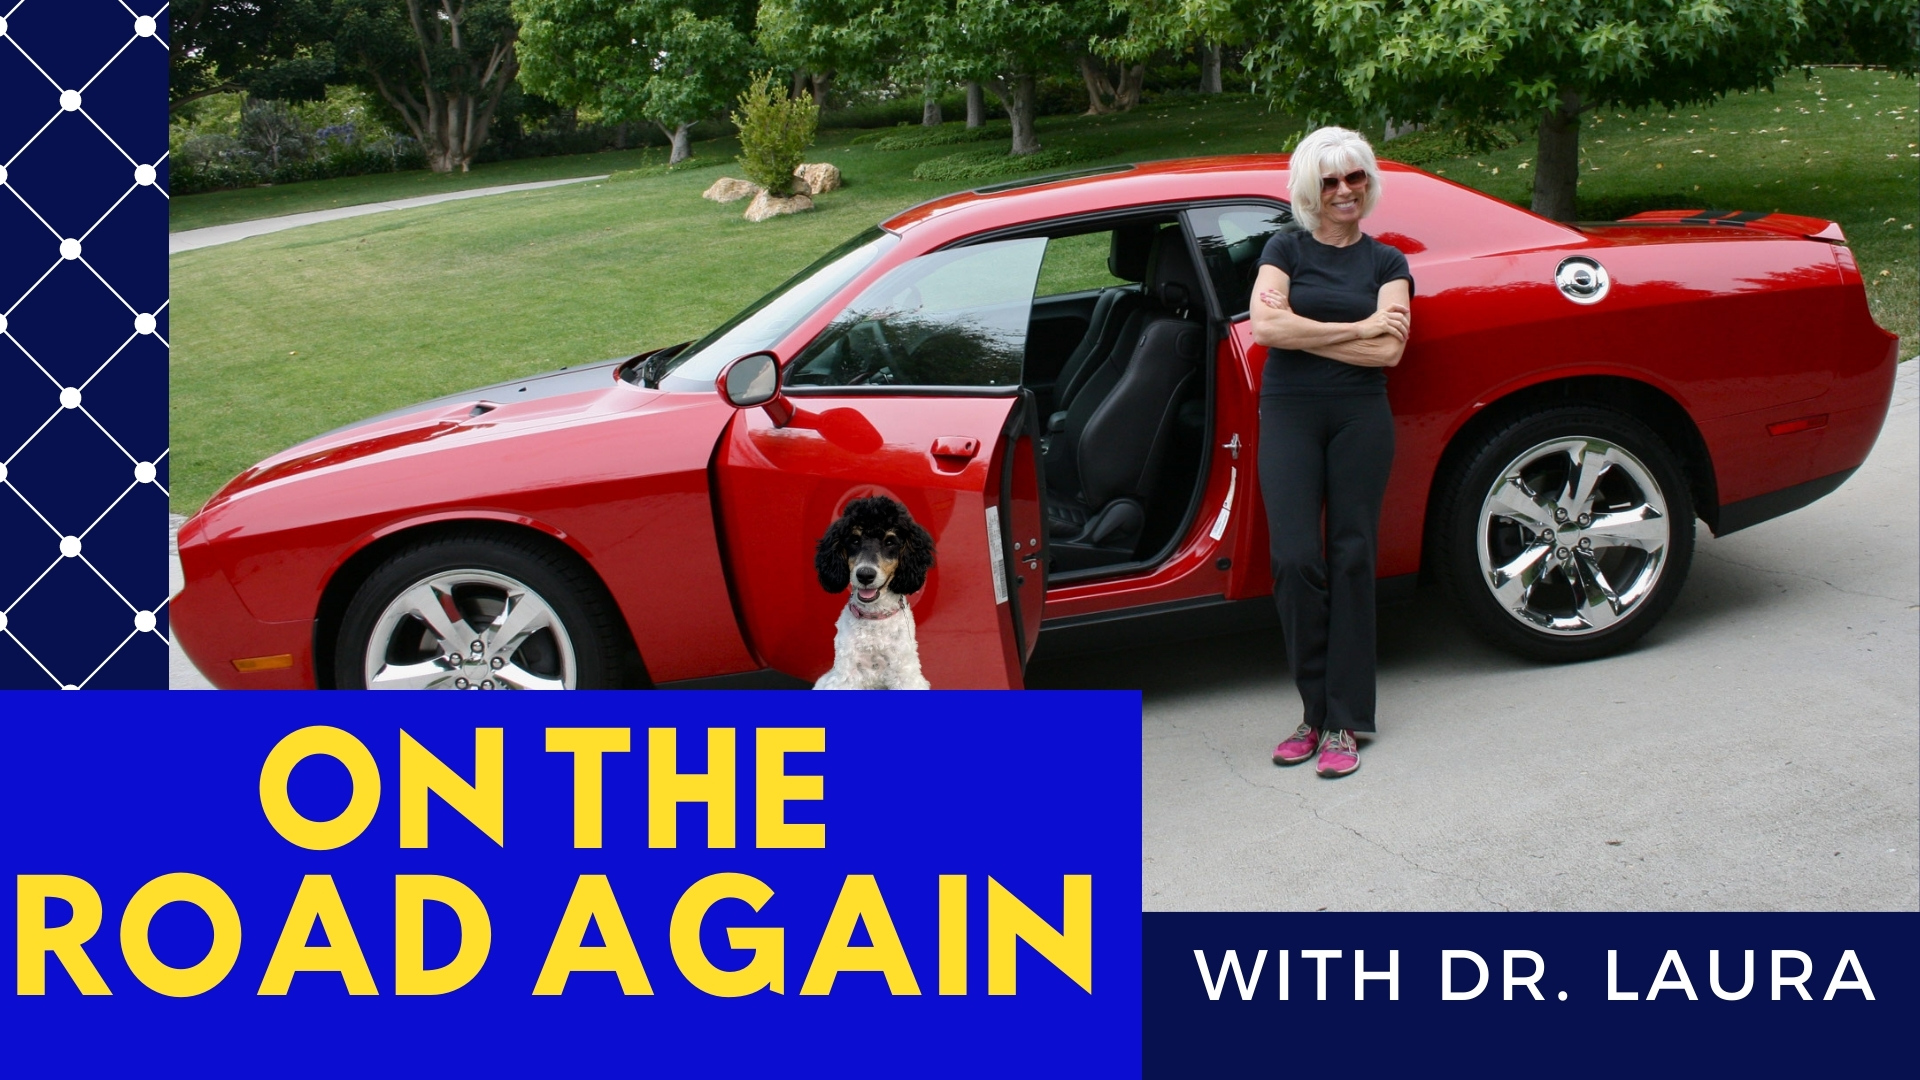 YouTube: On the Road Again with Dr. Laura